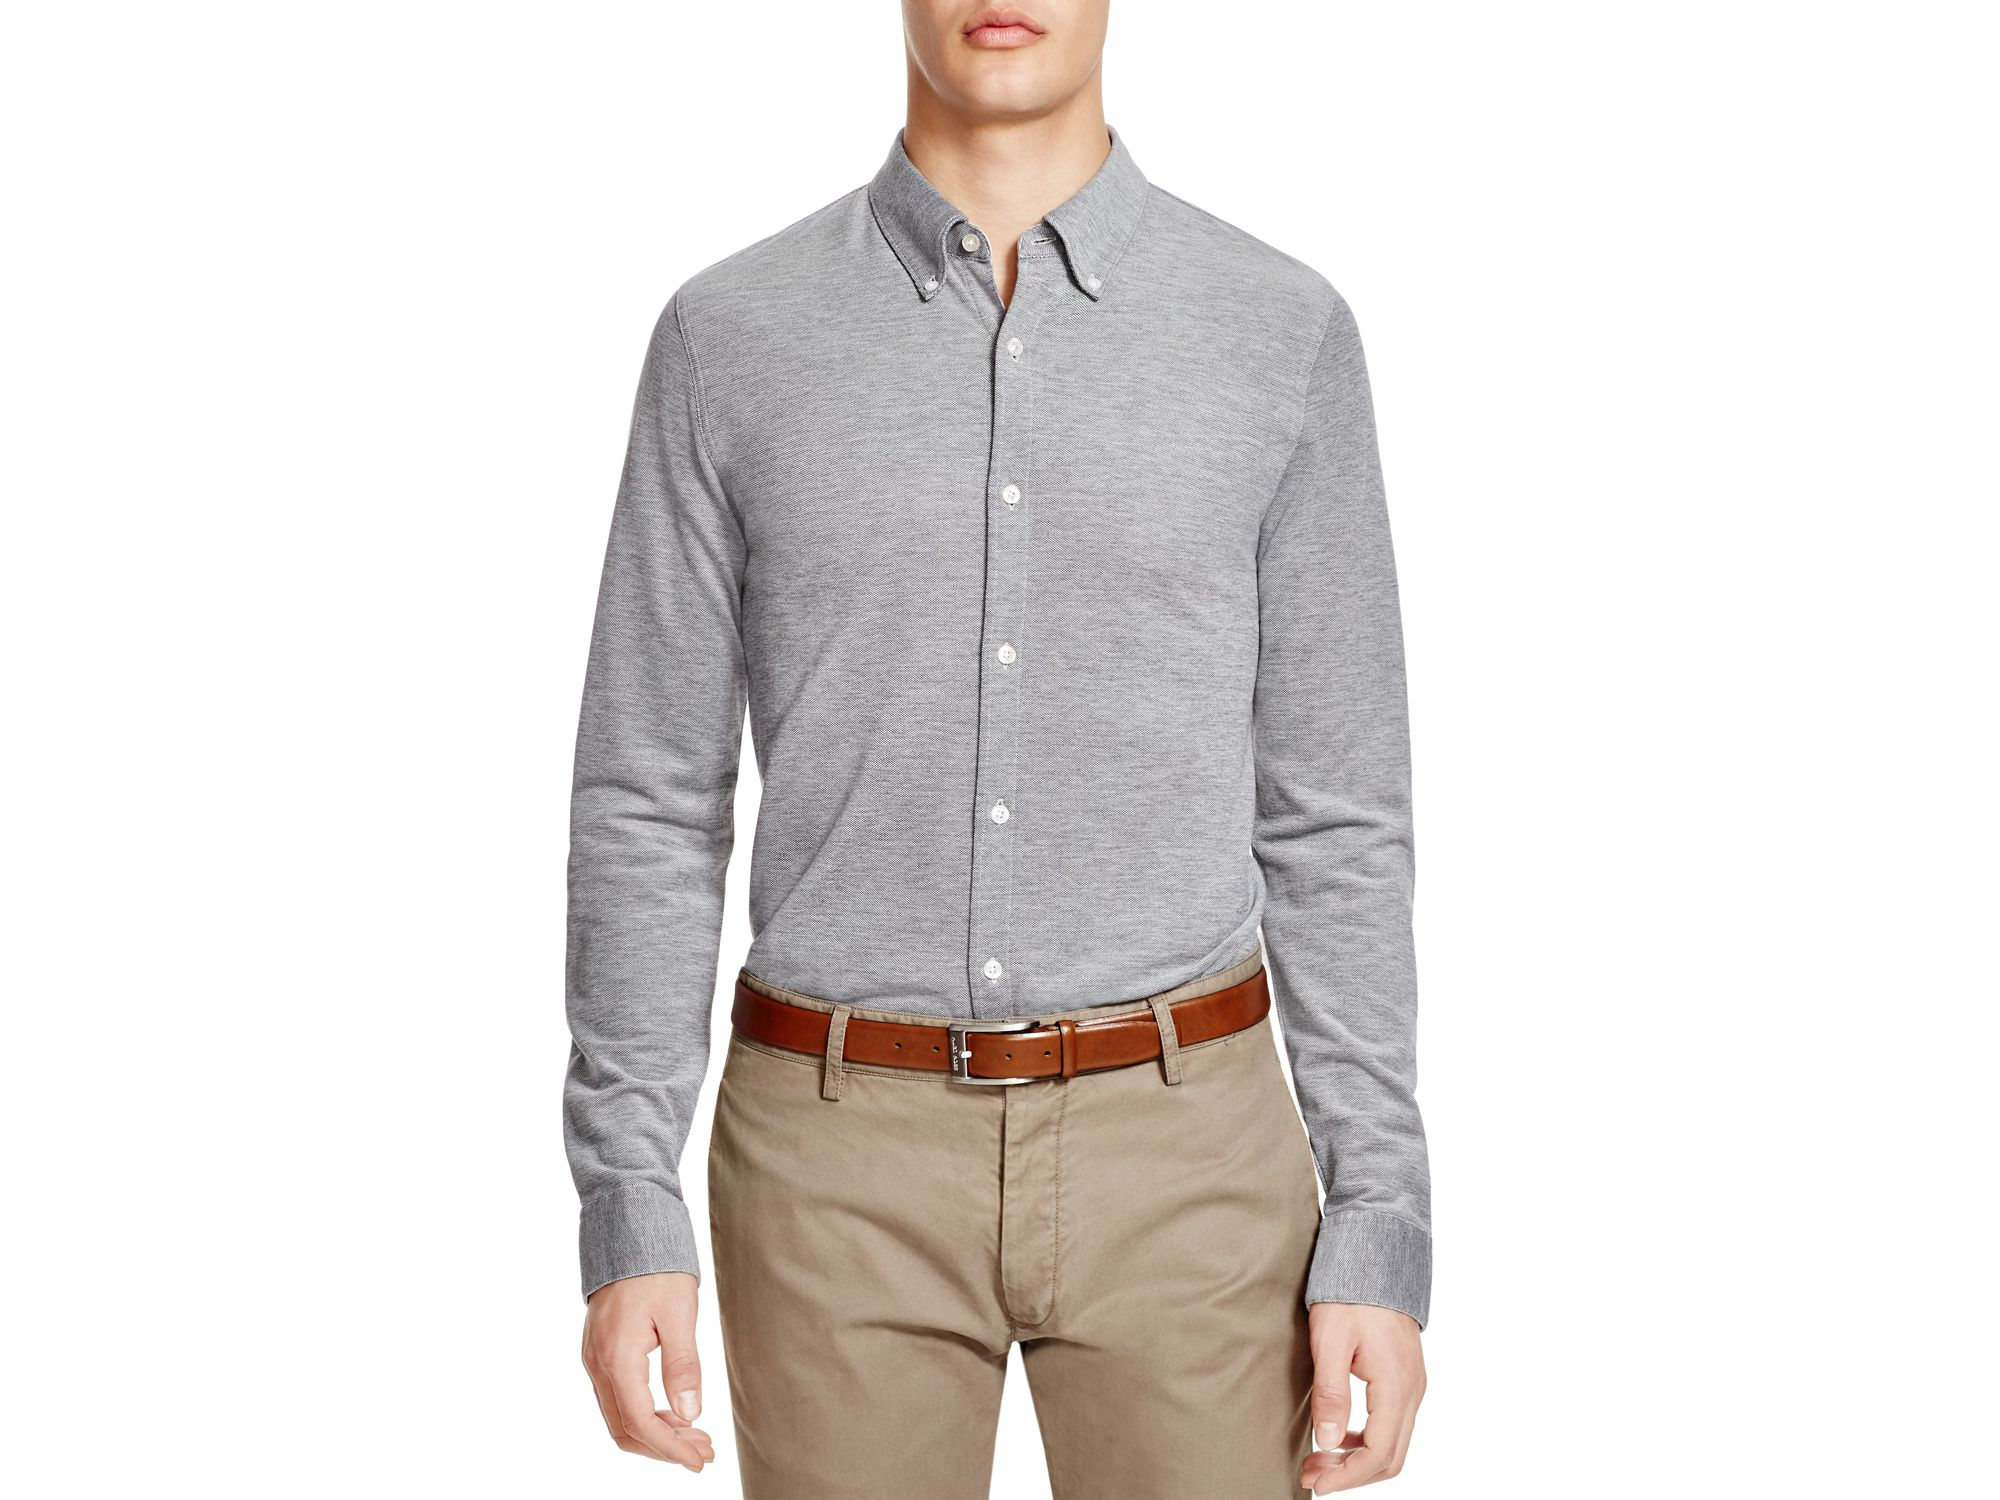 Lyst brooks brothers pique knit regular fit button down for Brooks brothers dress shirt fit